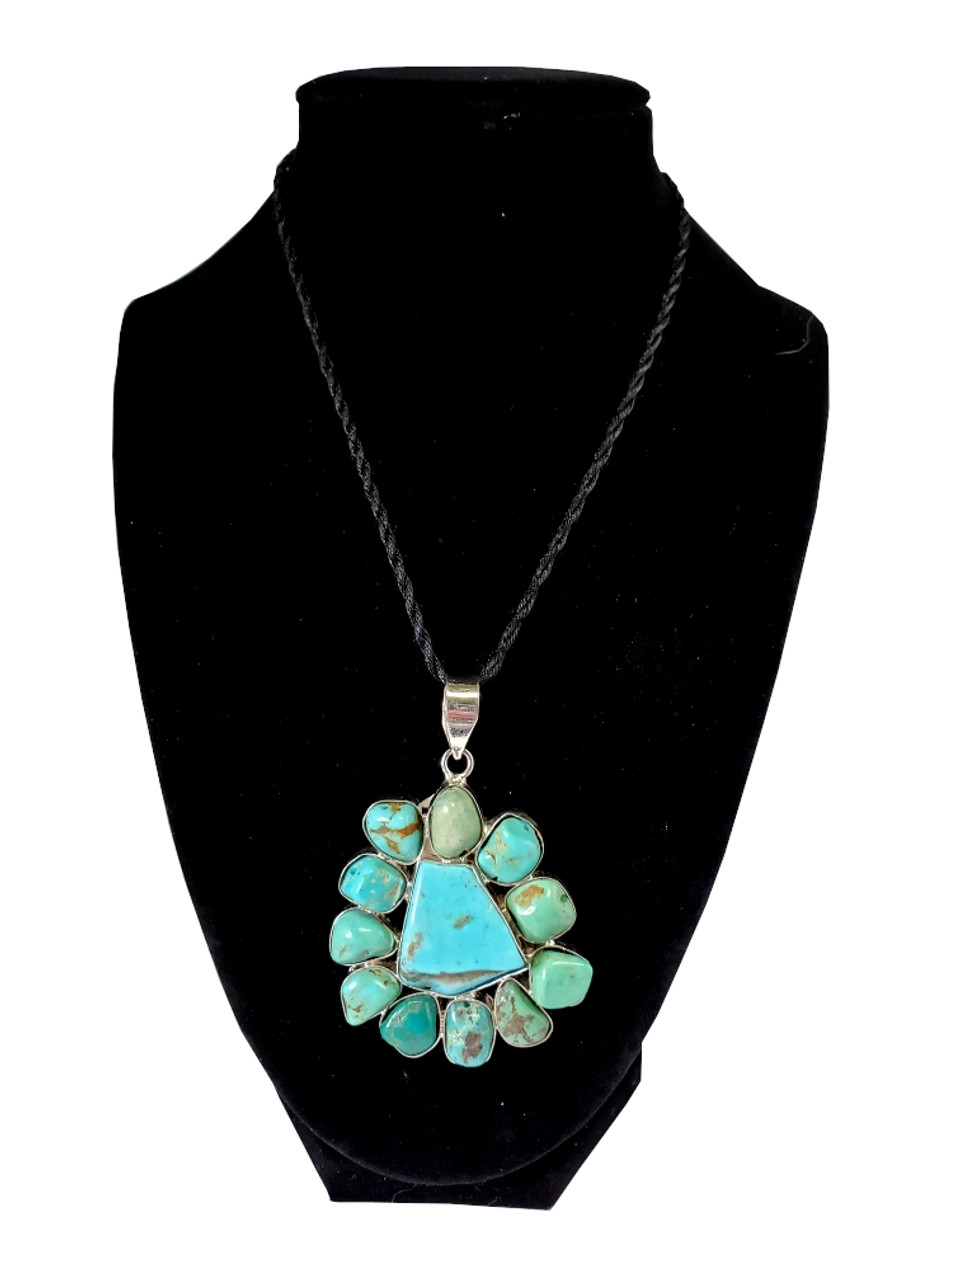 Surrounded By Turquoise Pendant